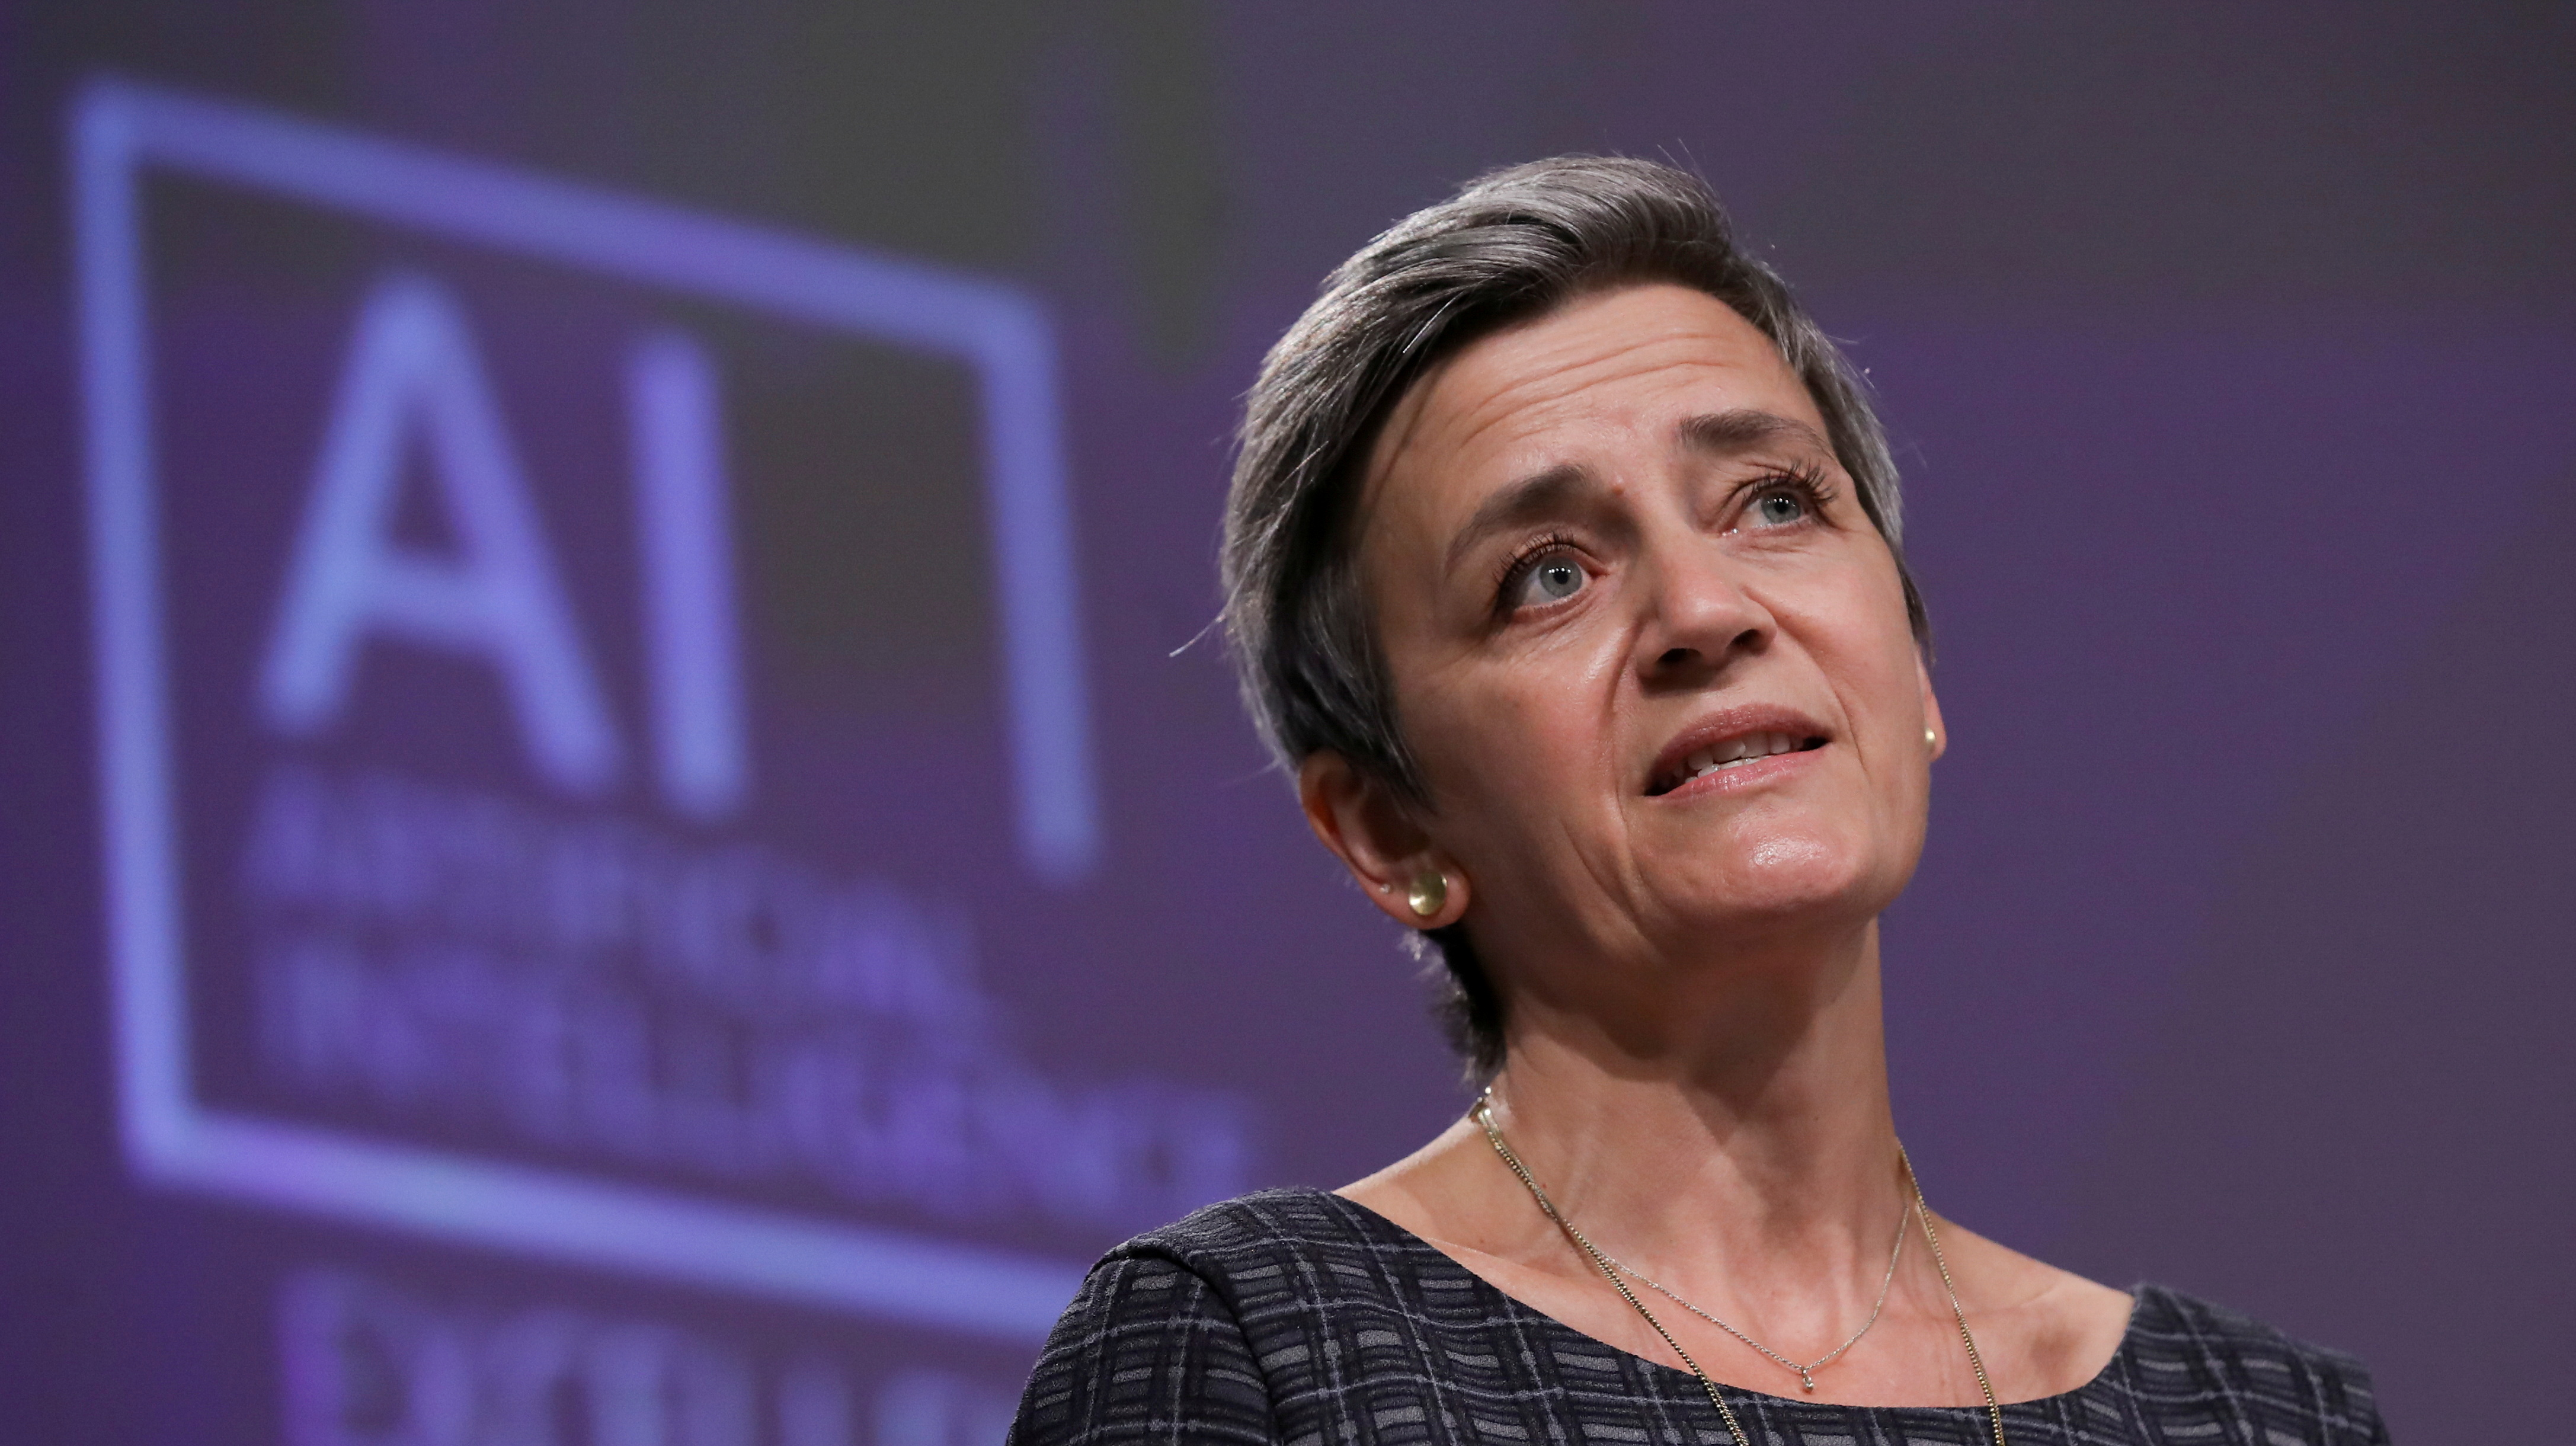 European Executive Vice-President Margrethe Vestager speaks at a media conference following a weekly meeting of EU Commission in Brussels, Belgium, April 21, 2021. Olivier Hoslet/Pool via REUTERS